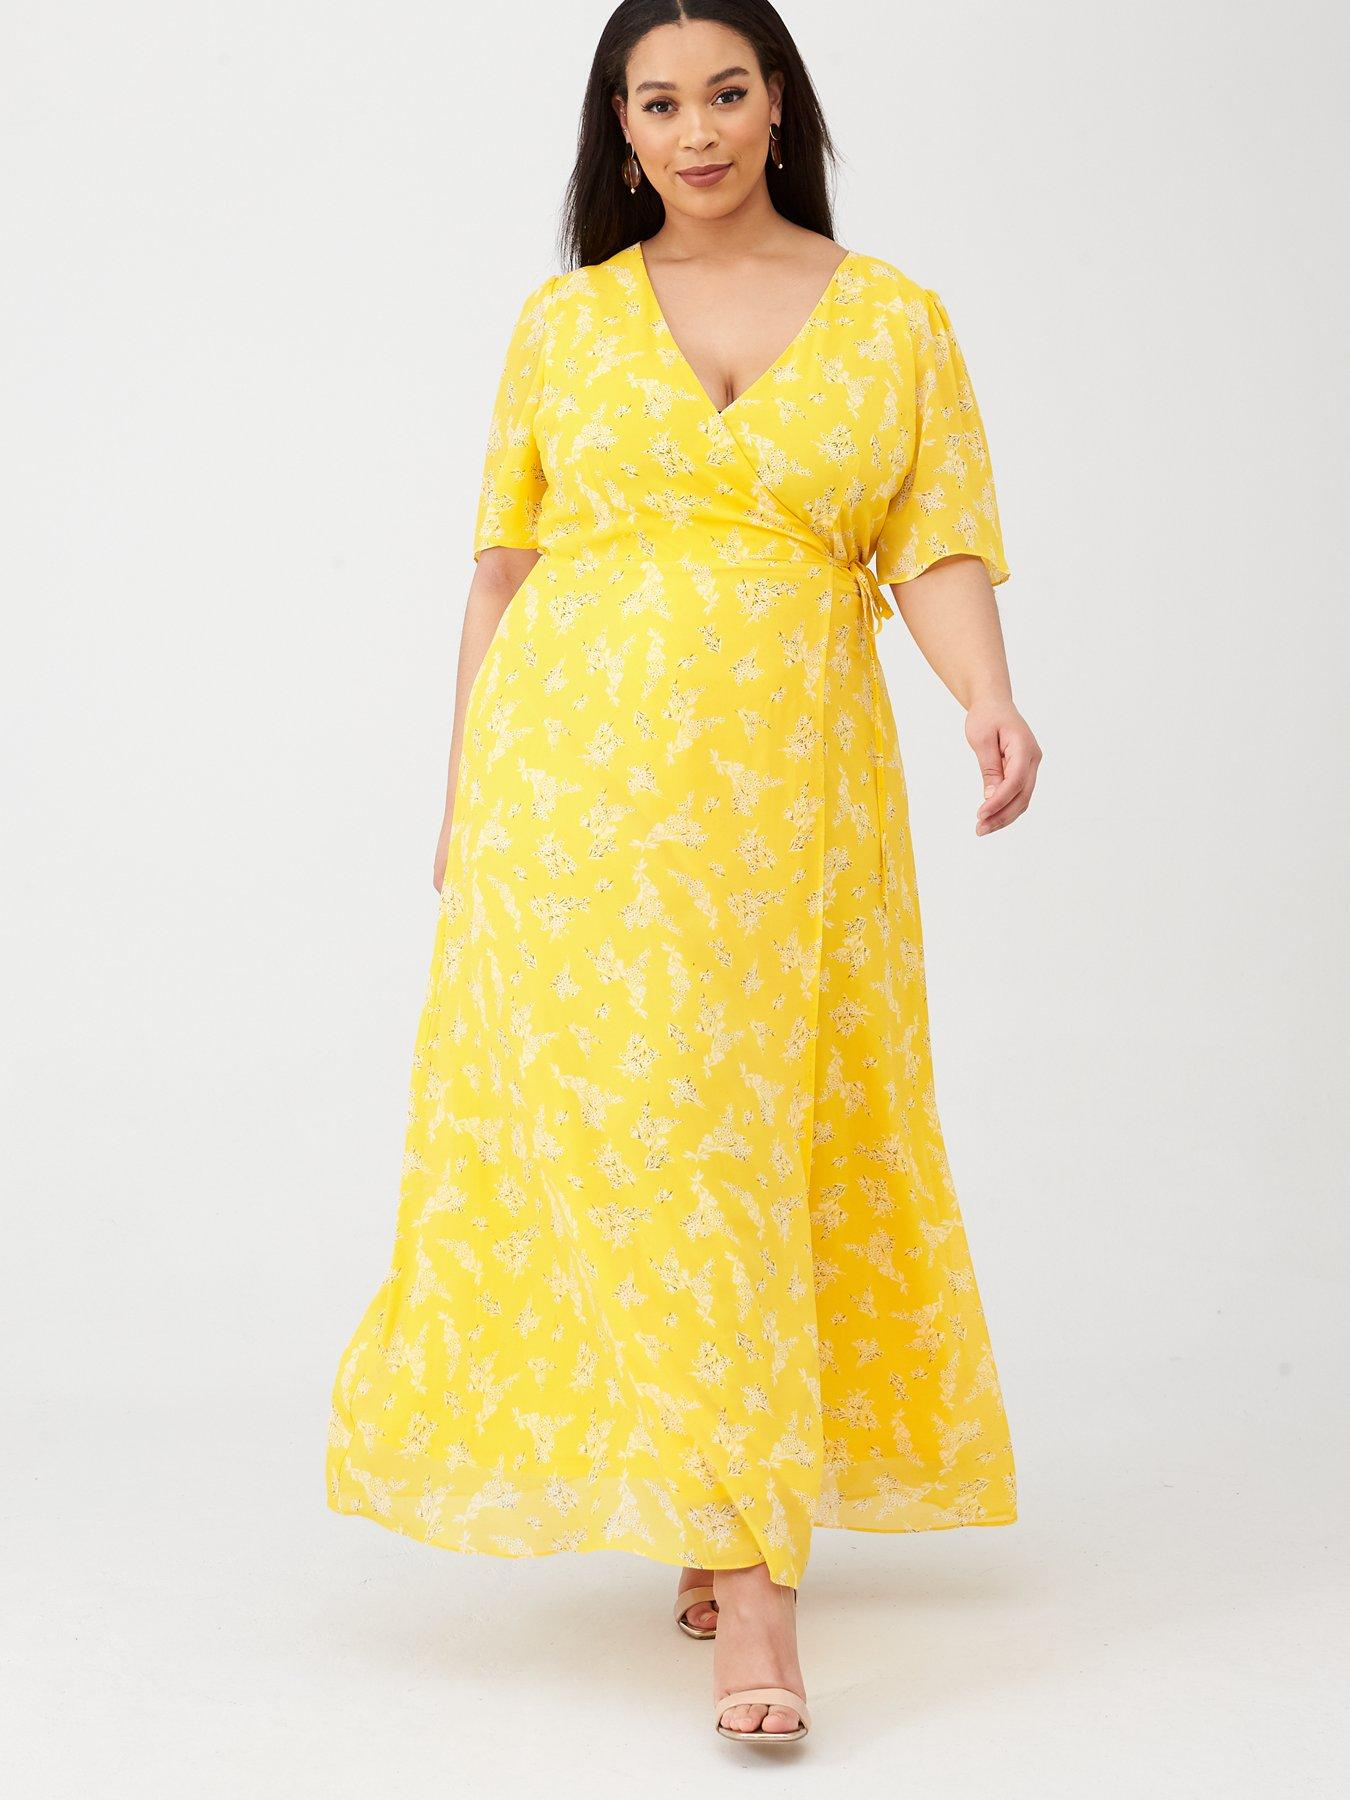 Amazing Yellow Evening Gown with Yellow Wrap Made to the Fit Barbie Doll